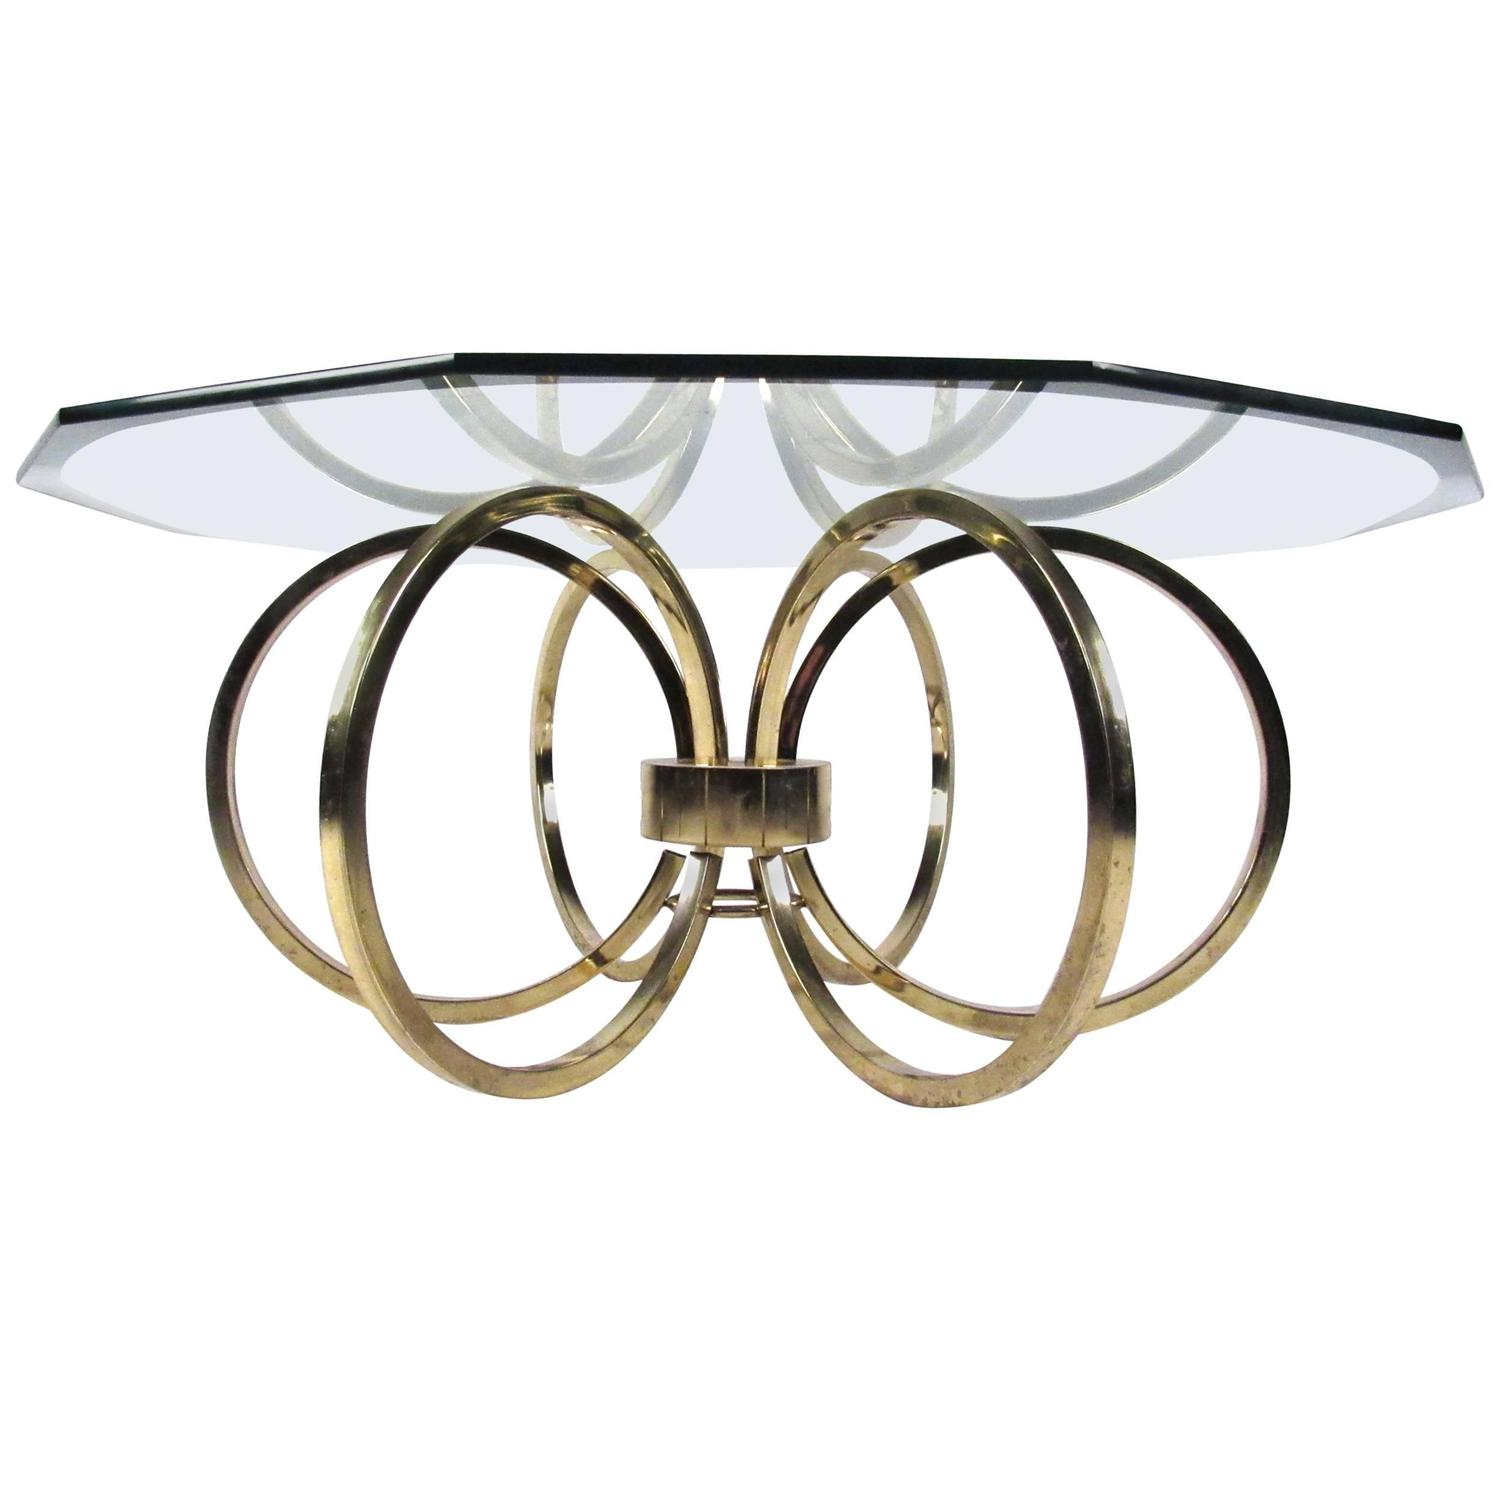 Elegant Glass And Metal Coffee Table: Elegant Mid-Century Modern Beveled Glass Coffee Table For